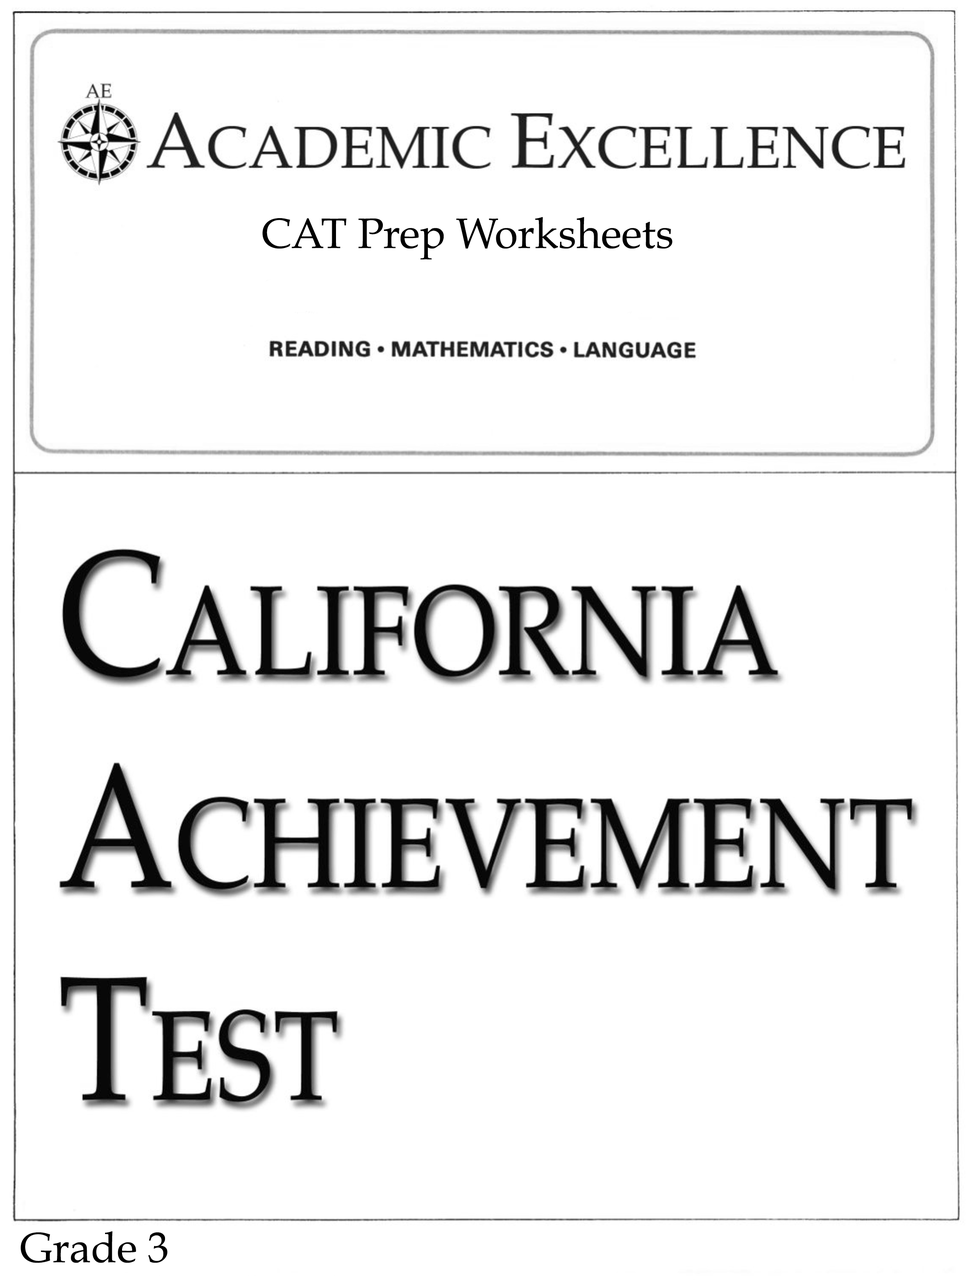 medium resolution of CAT Prep Pack: Grade 3 - PDF Download - Academic Excellence